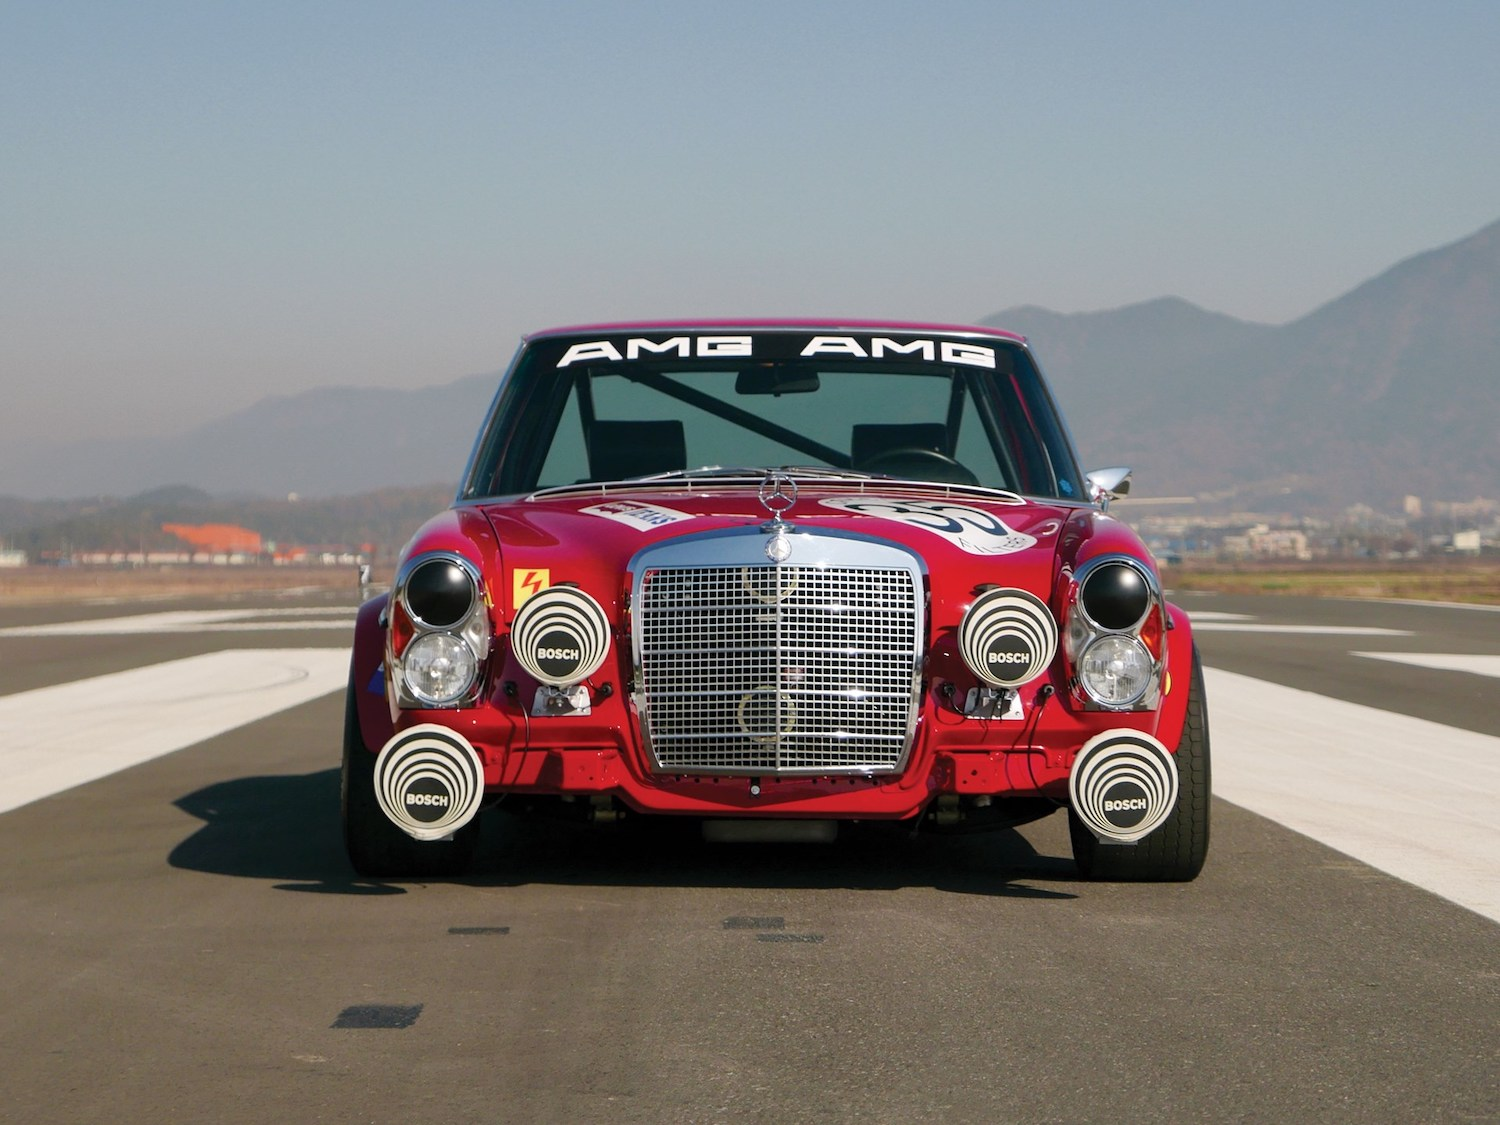 1969 Mercedes-Benz 300 SEL 6.3 'Red Pig' Replica front